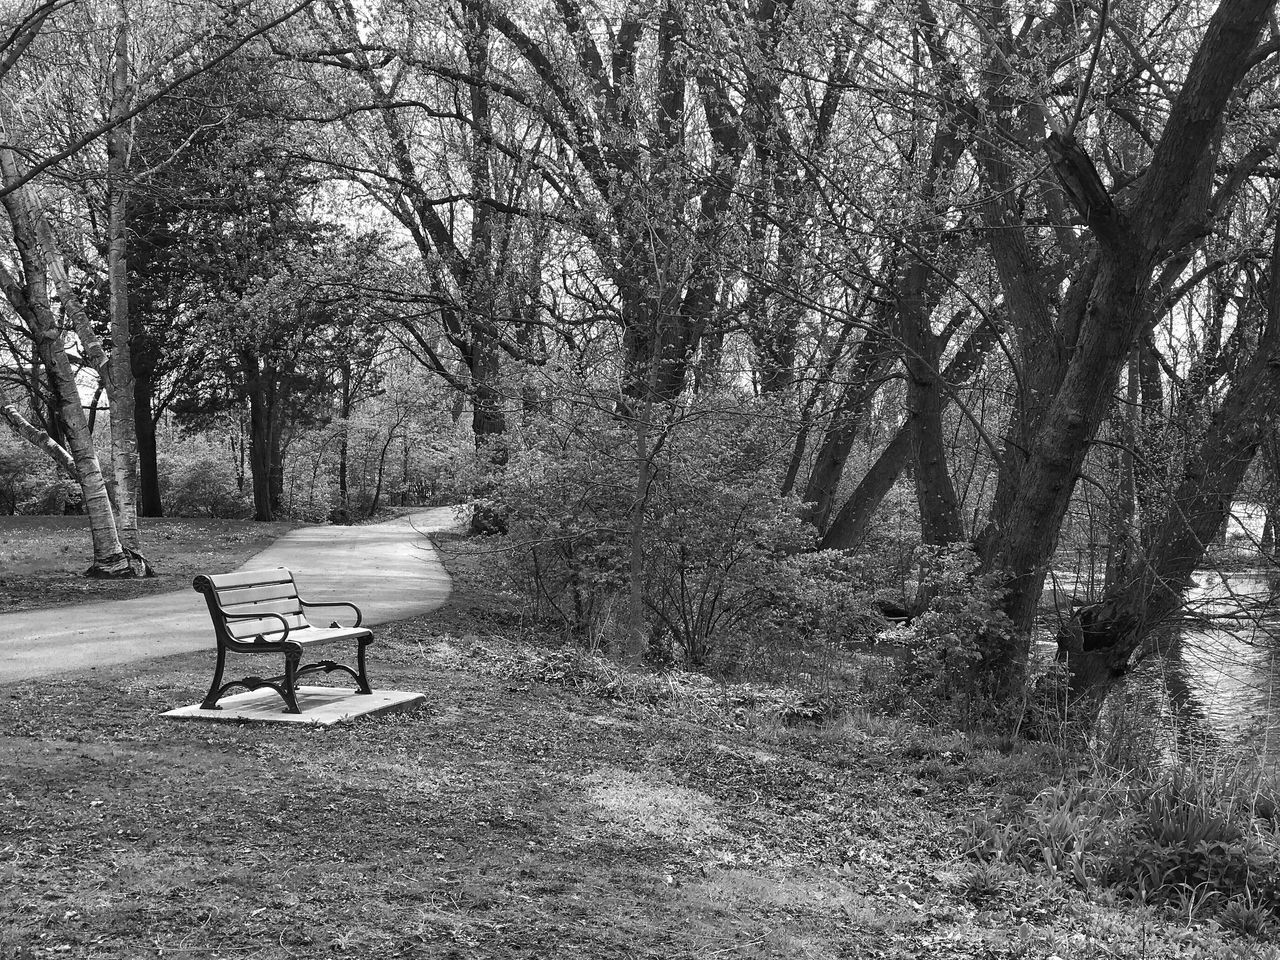 The Secret Spaces Tree Nature Tranquility Beauty In Nature Tranquil Scene Park - Man Made Space Day No People Outdoors Bare Tree Branch Bench The Week On Eyem Springtime Spring The Great Outdoors - 2017 EyeEm Awards BYOPaper!